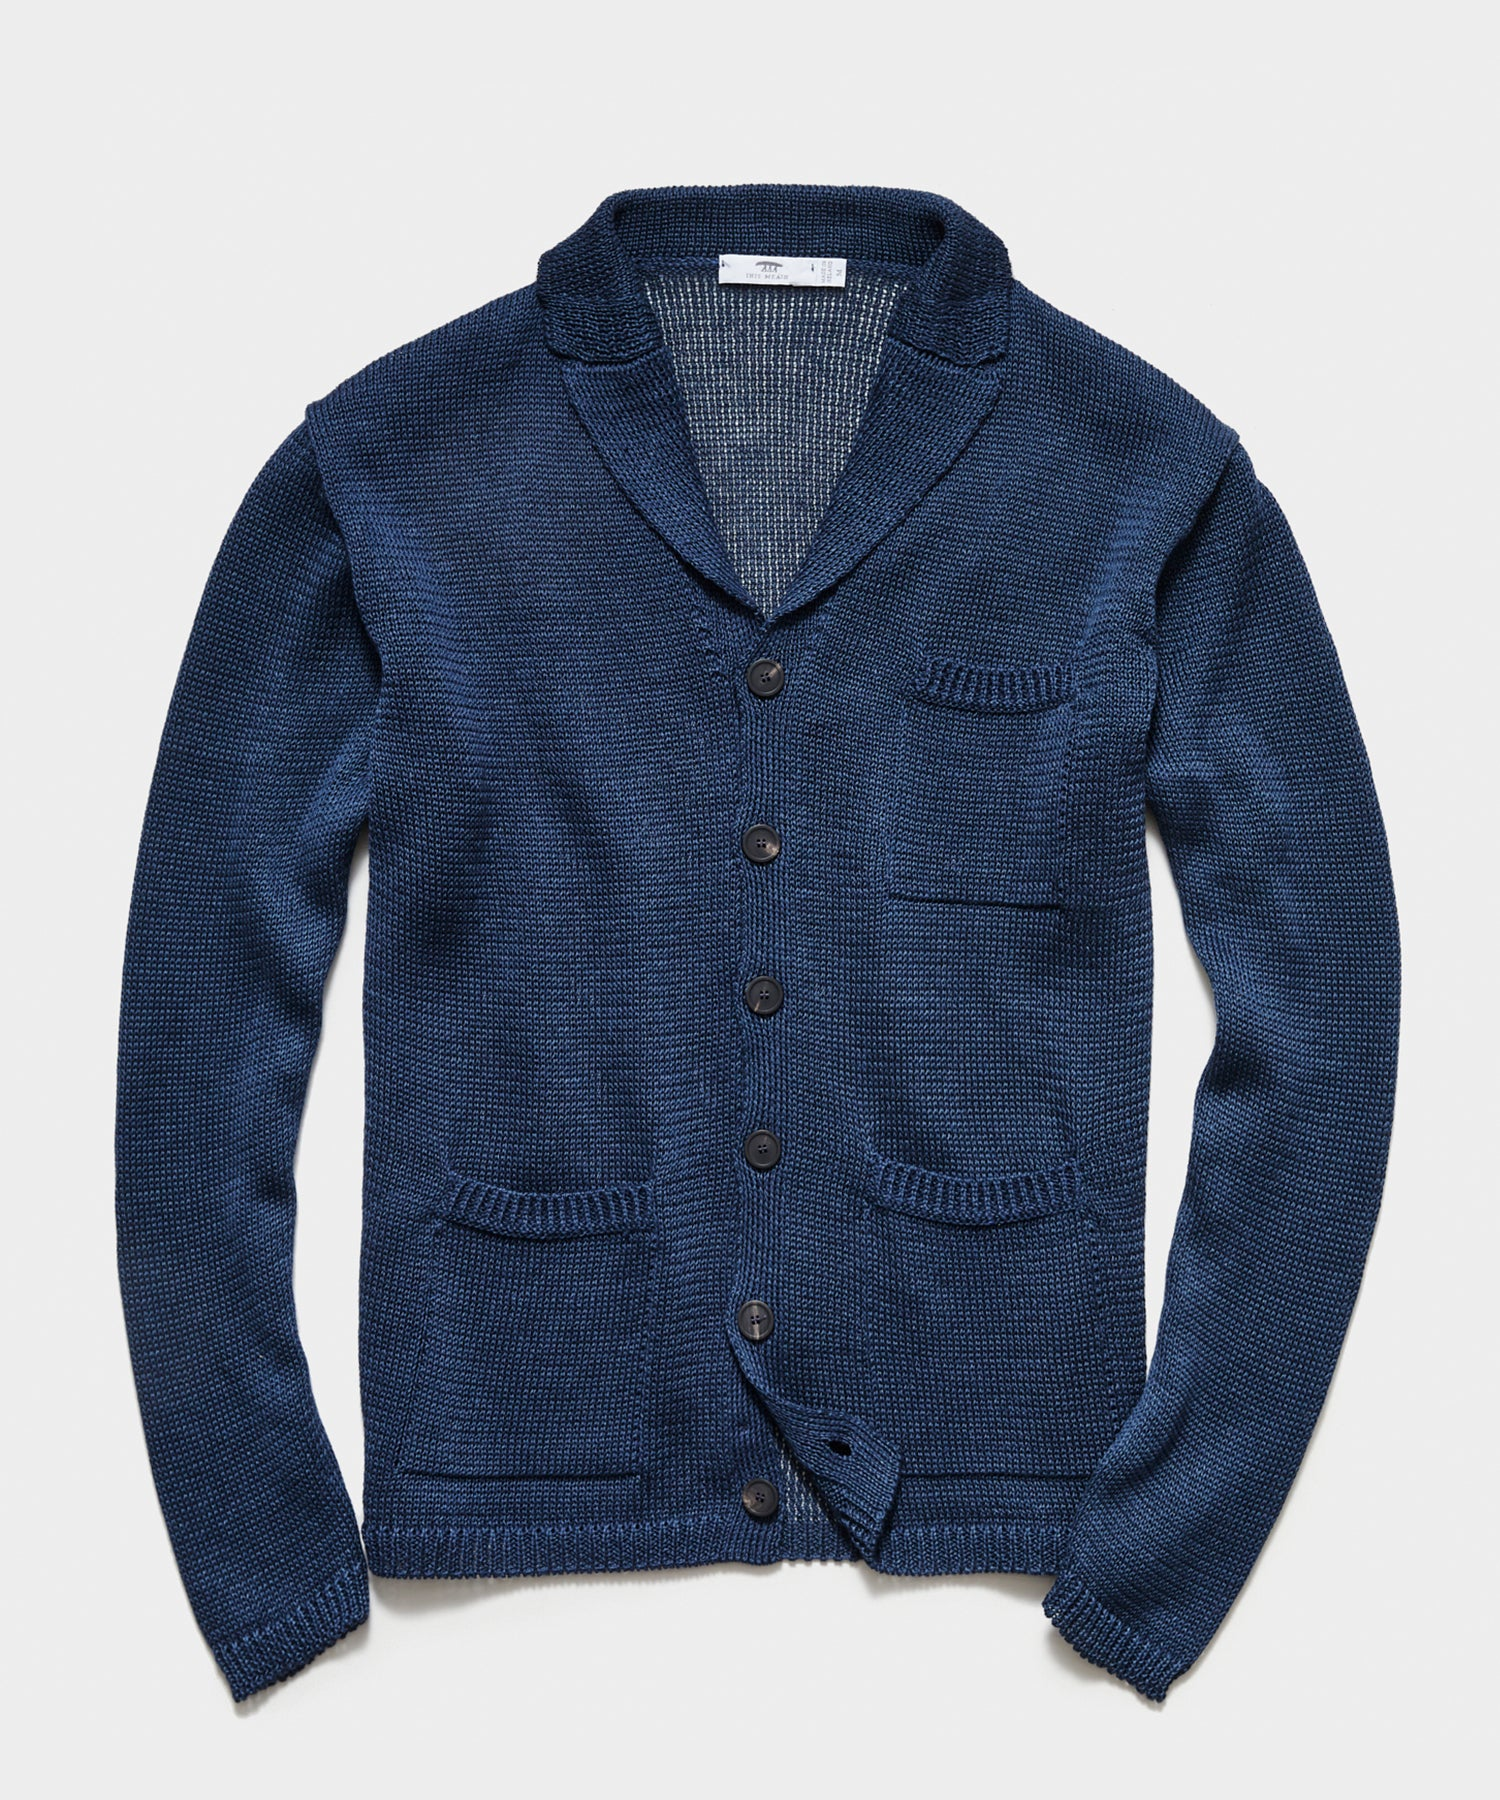 Inis Meáin Pub Jacket in Blueberry